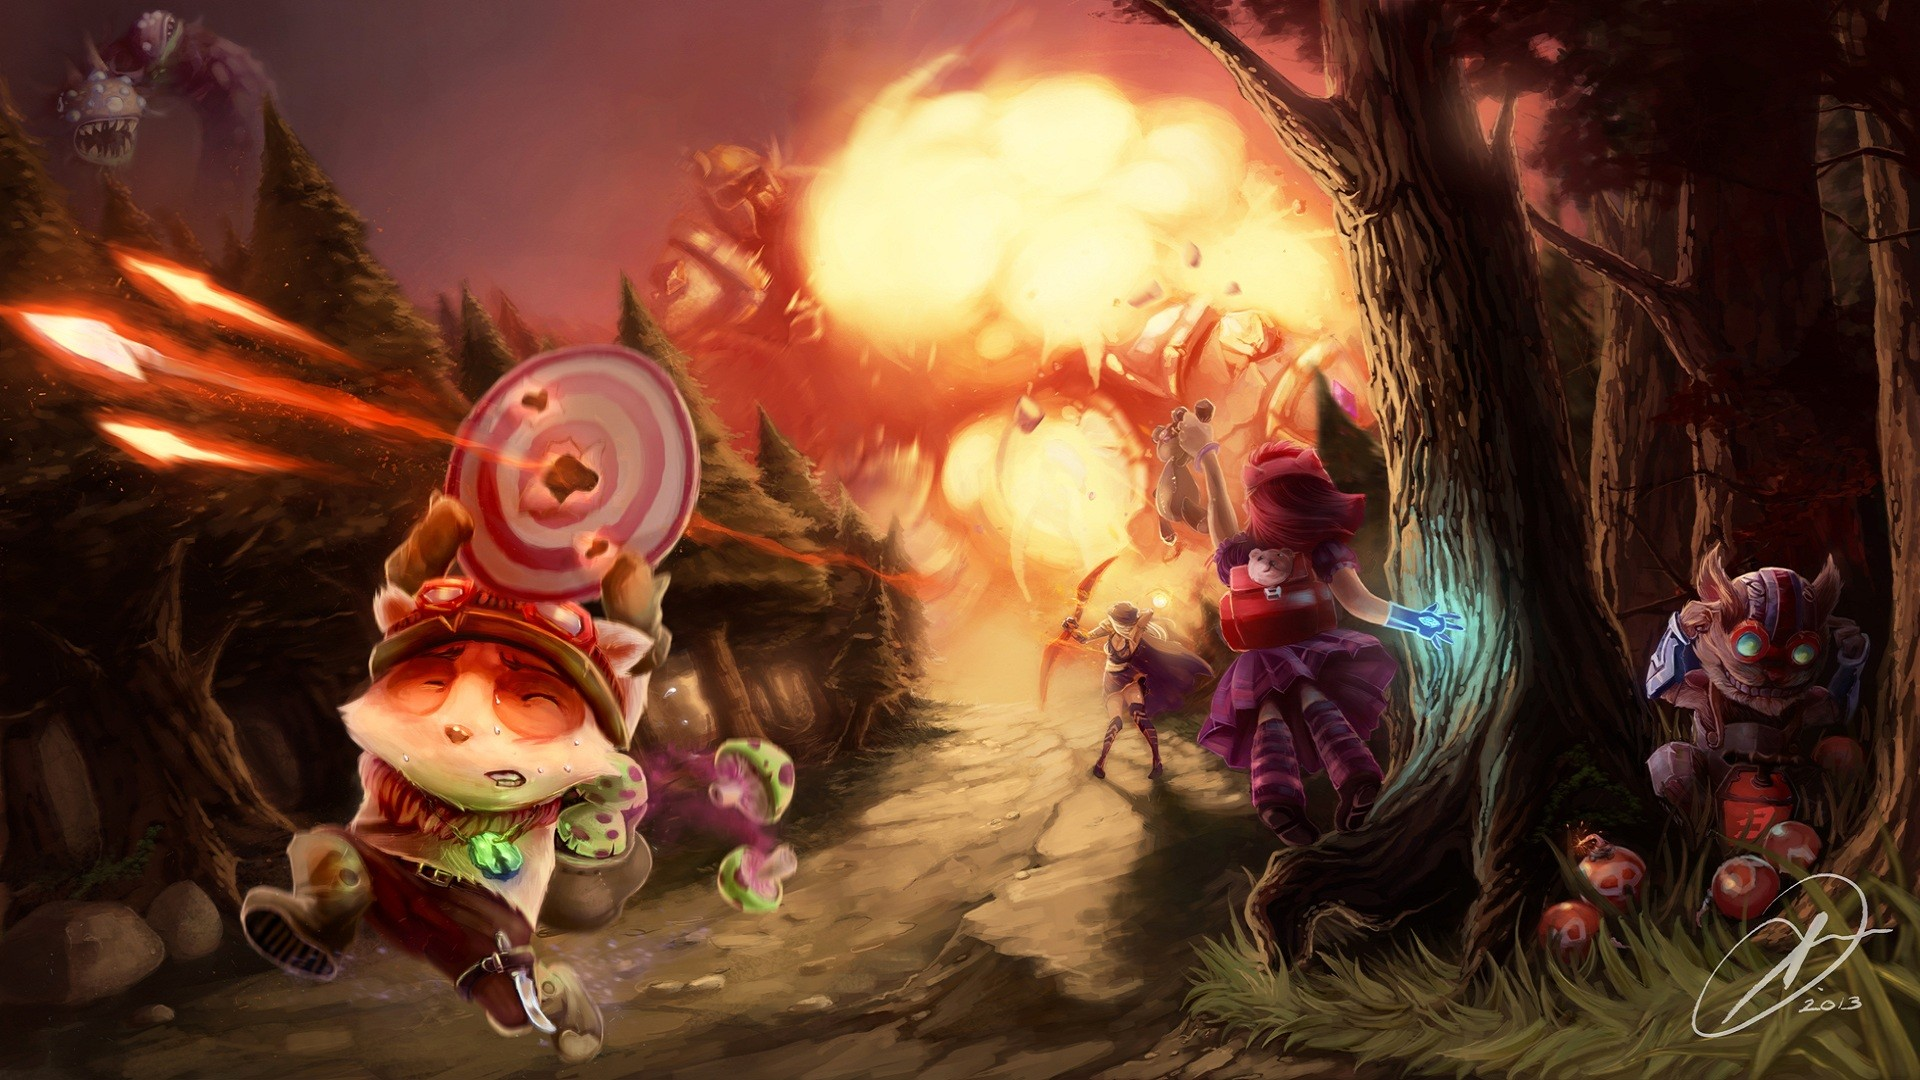 League of Legends · Teemo · Ziggs · Annie · Ashe · Digi-Art Throwdown Contest